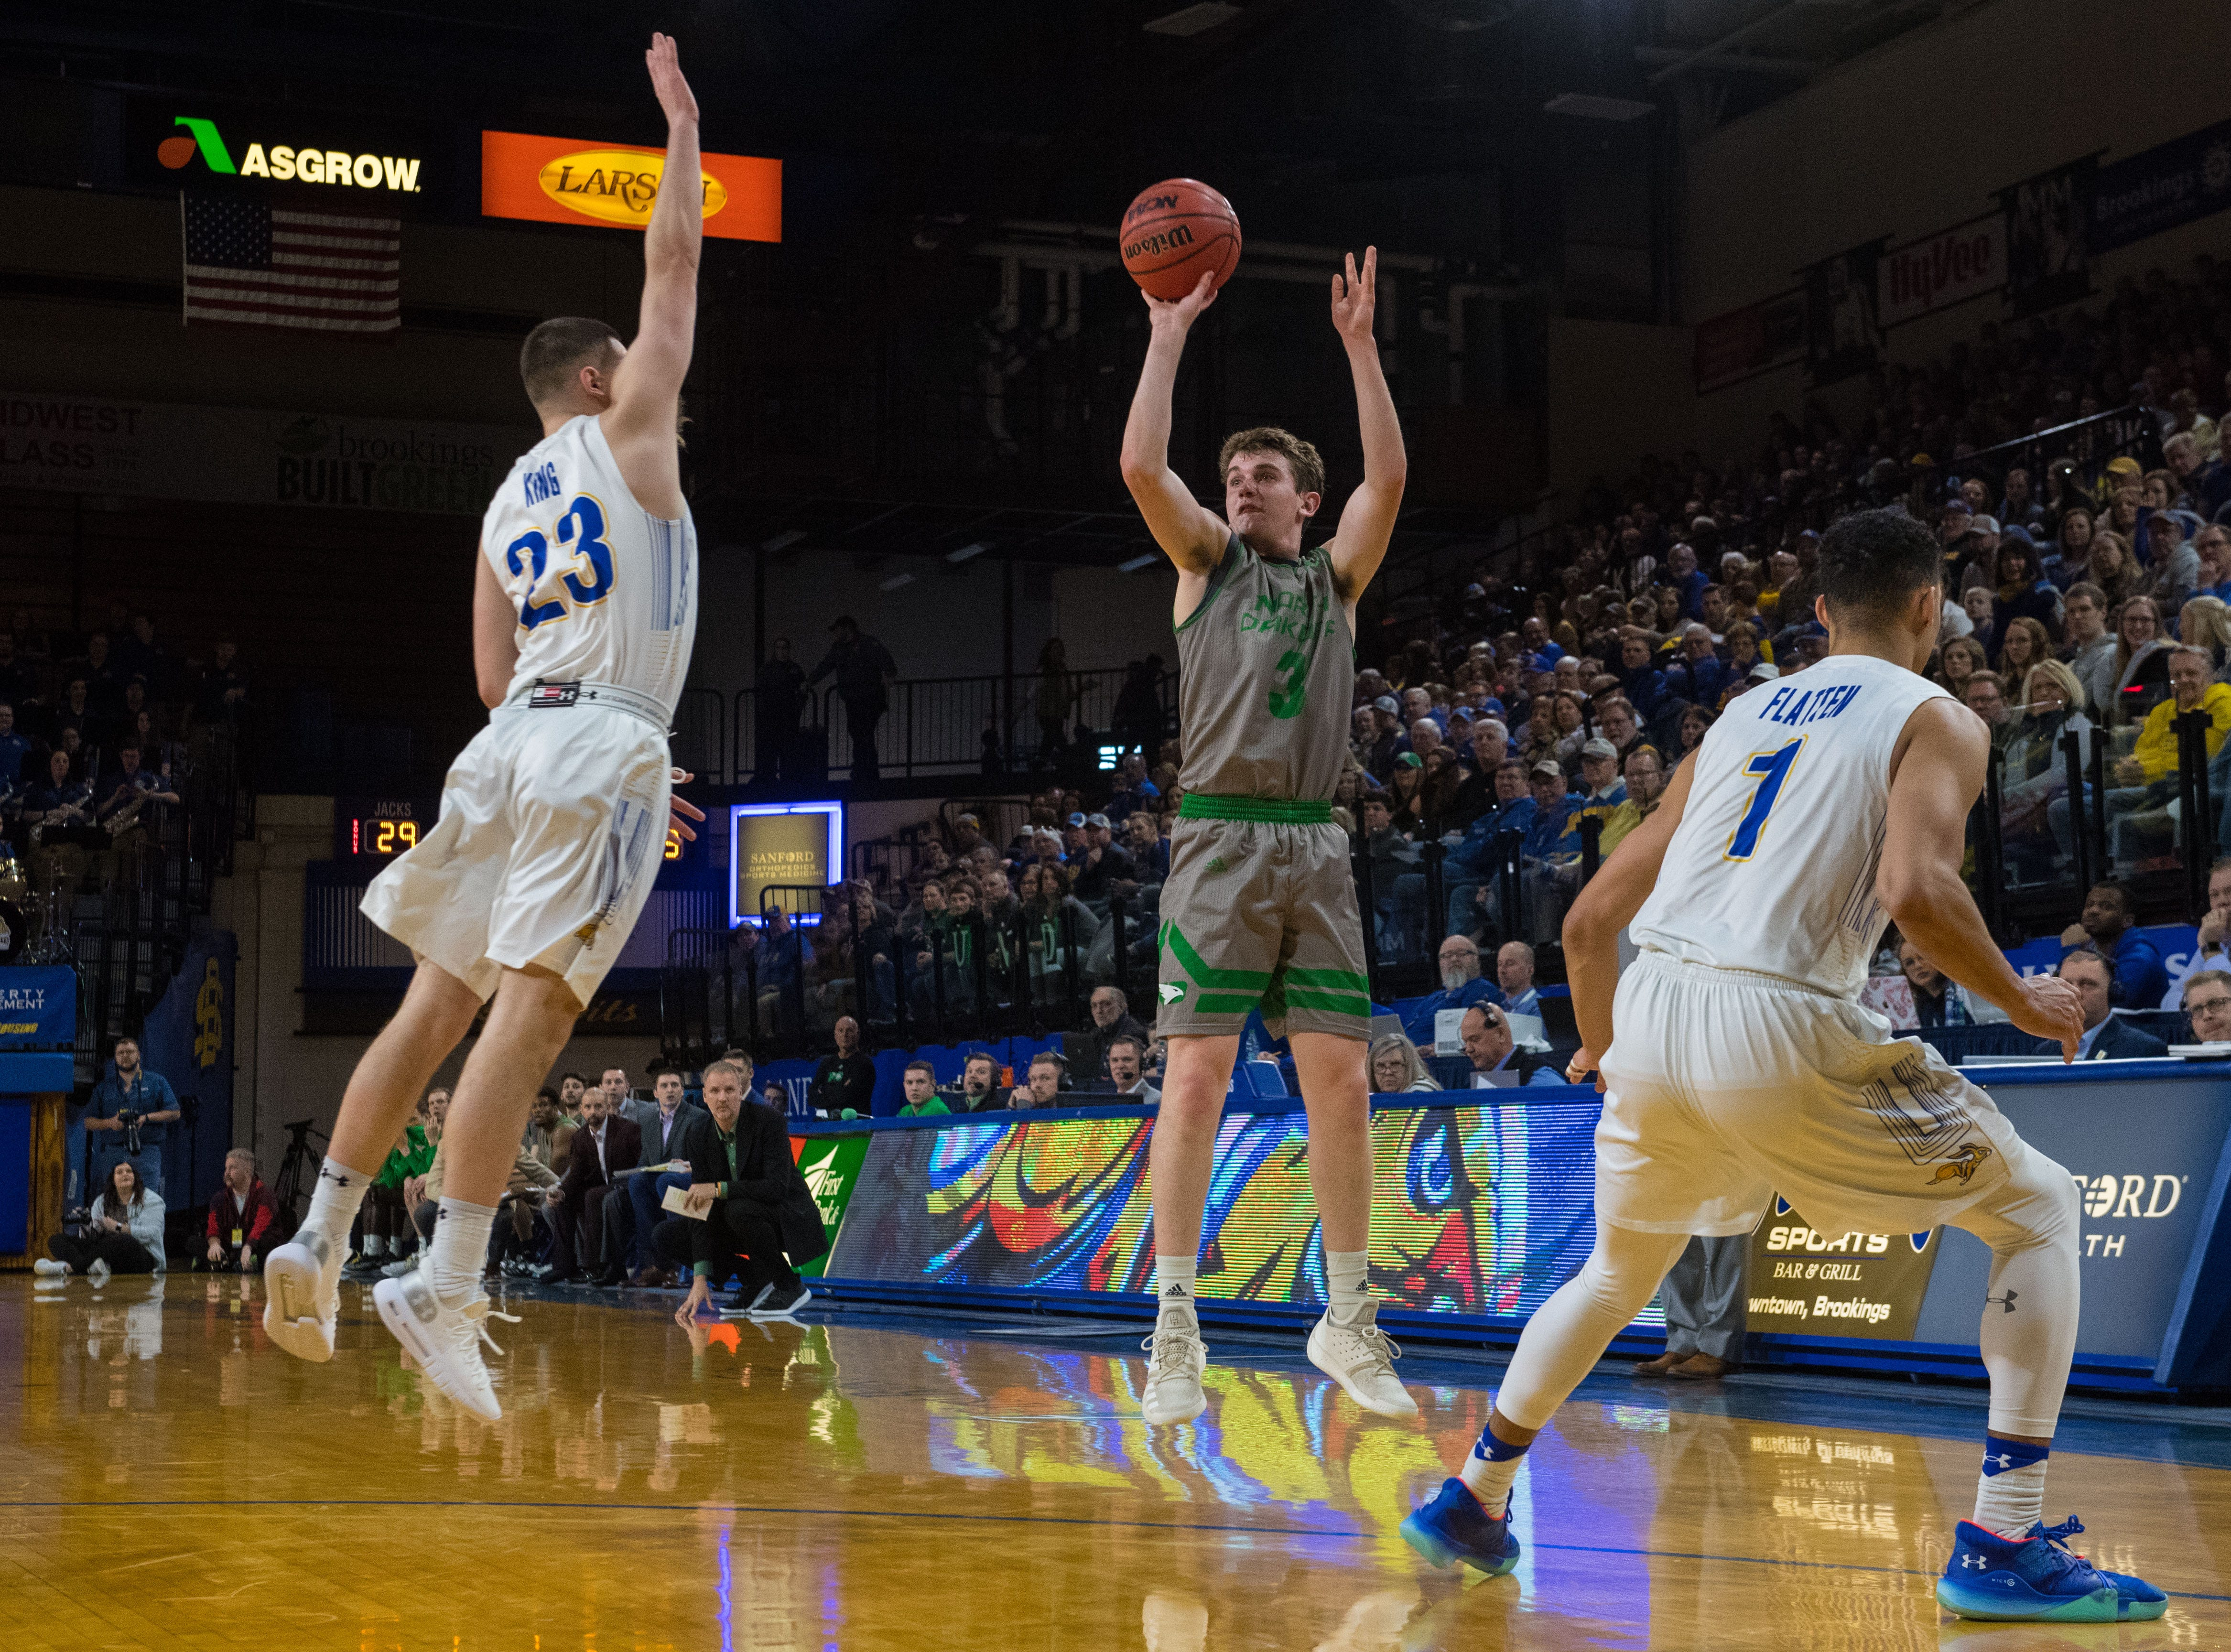 North Dakota's Billy Brown (3) shoots the ball during a game against South Dakota State in Brookings, S.D., Saturday, Feb. 9, 2019.